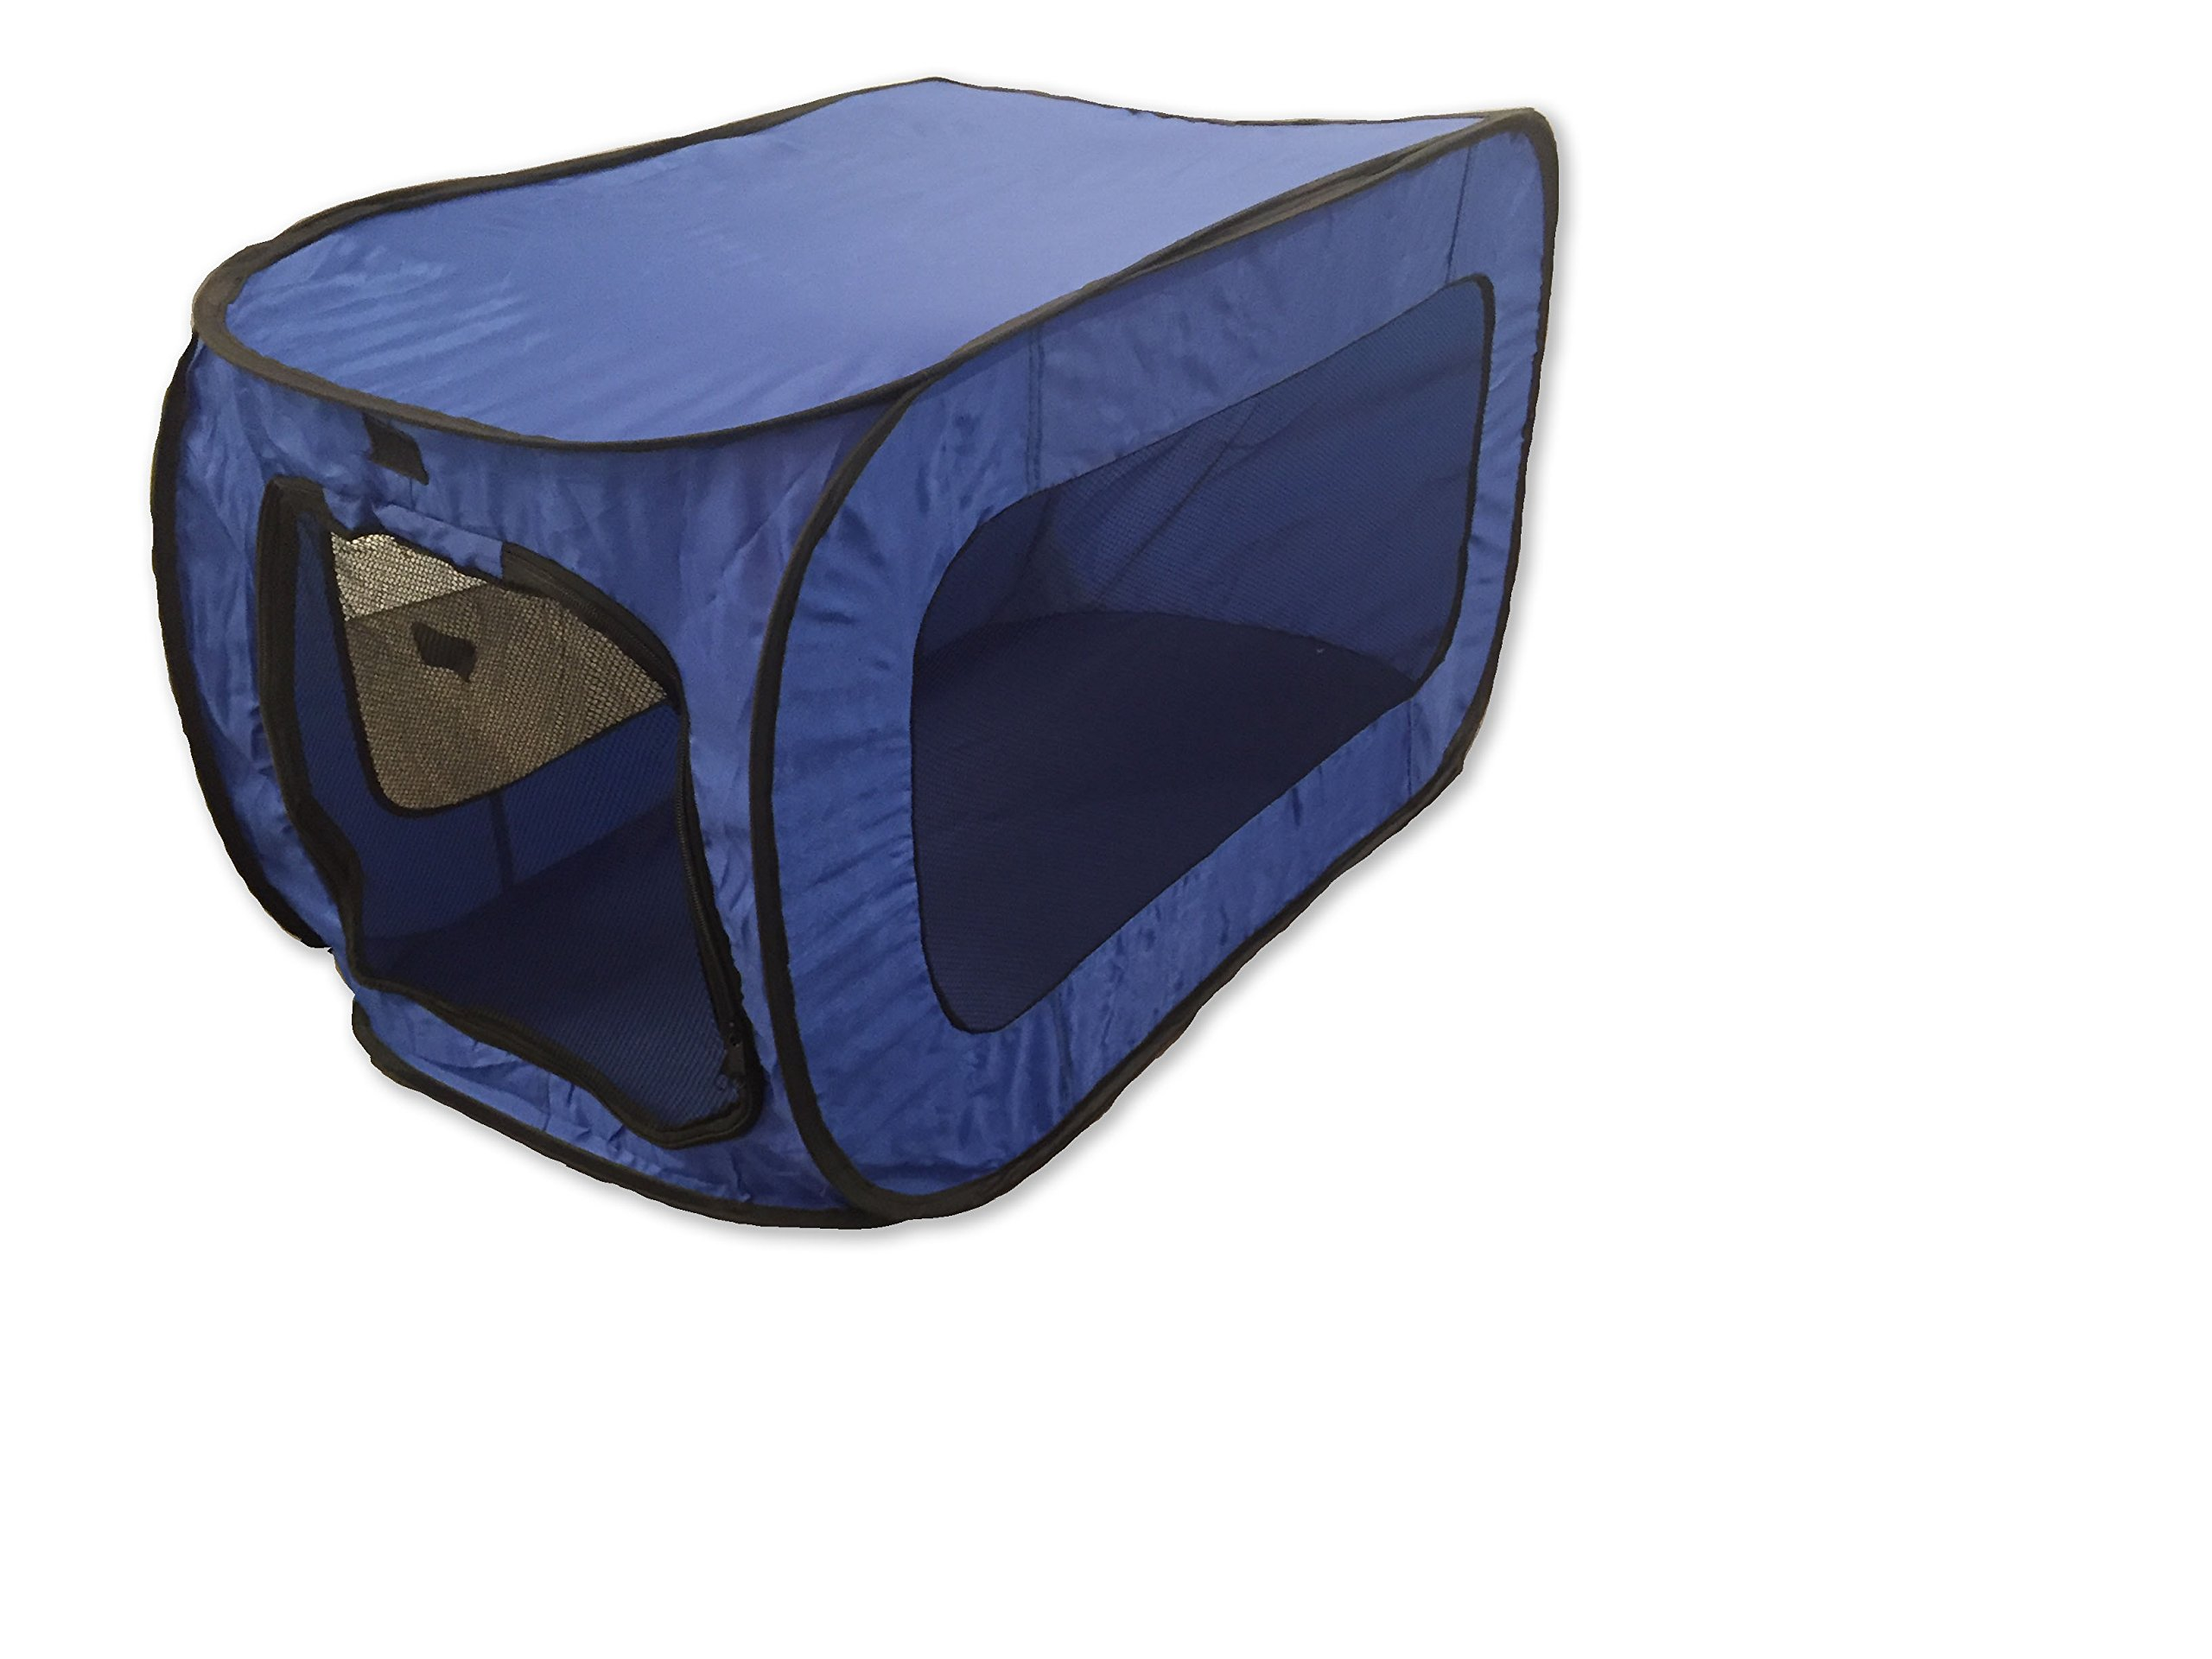 Beatrice Home Fashions SOLPPK00BLU POP UP PET KENNEL, Blue